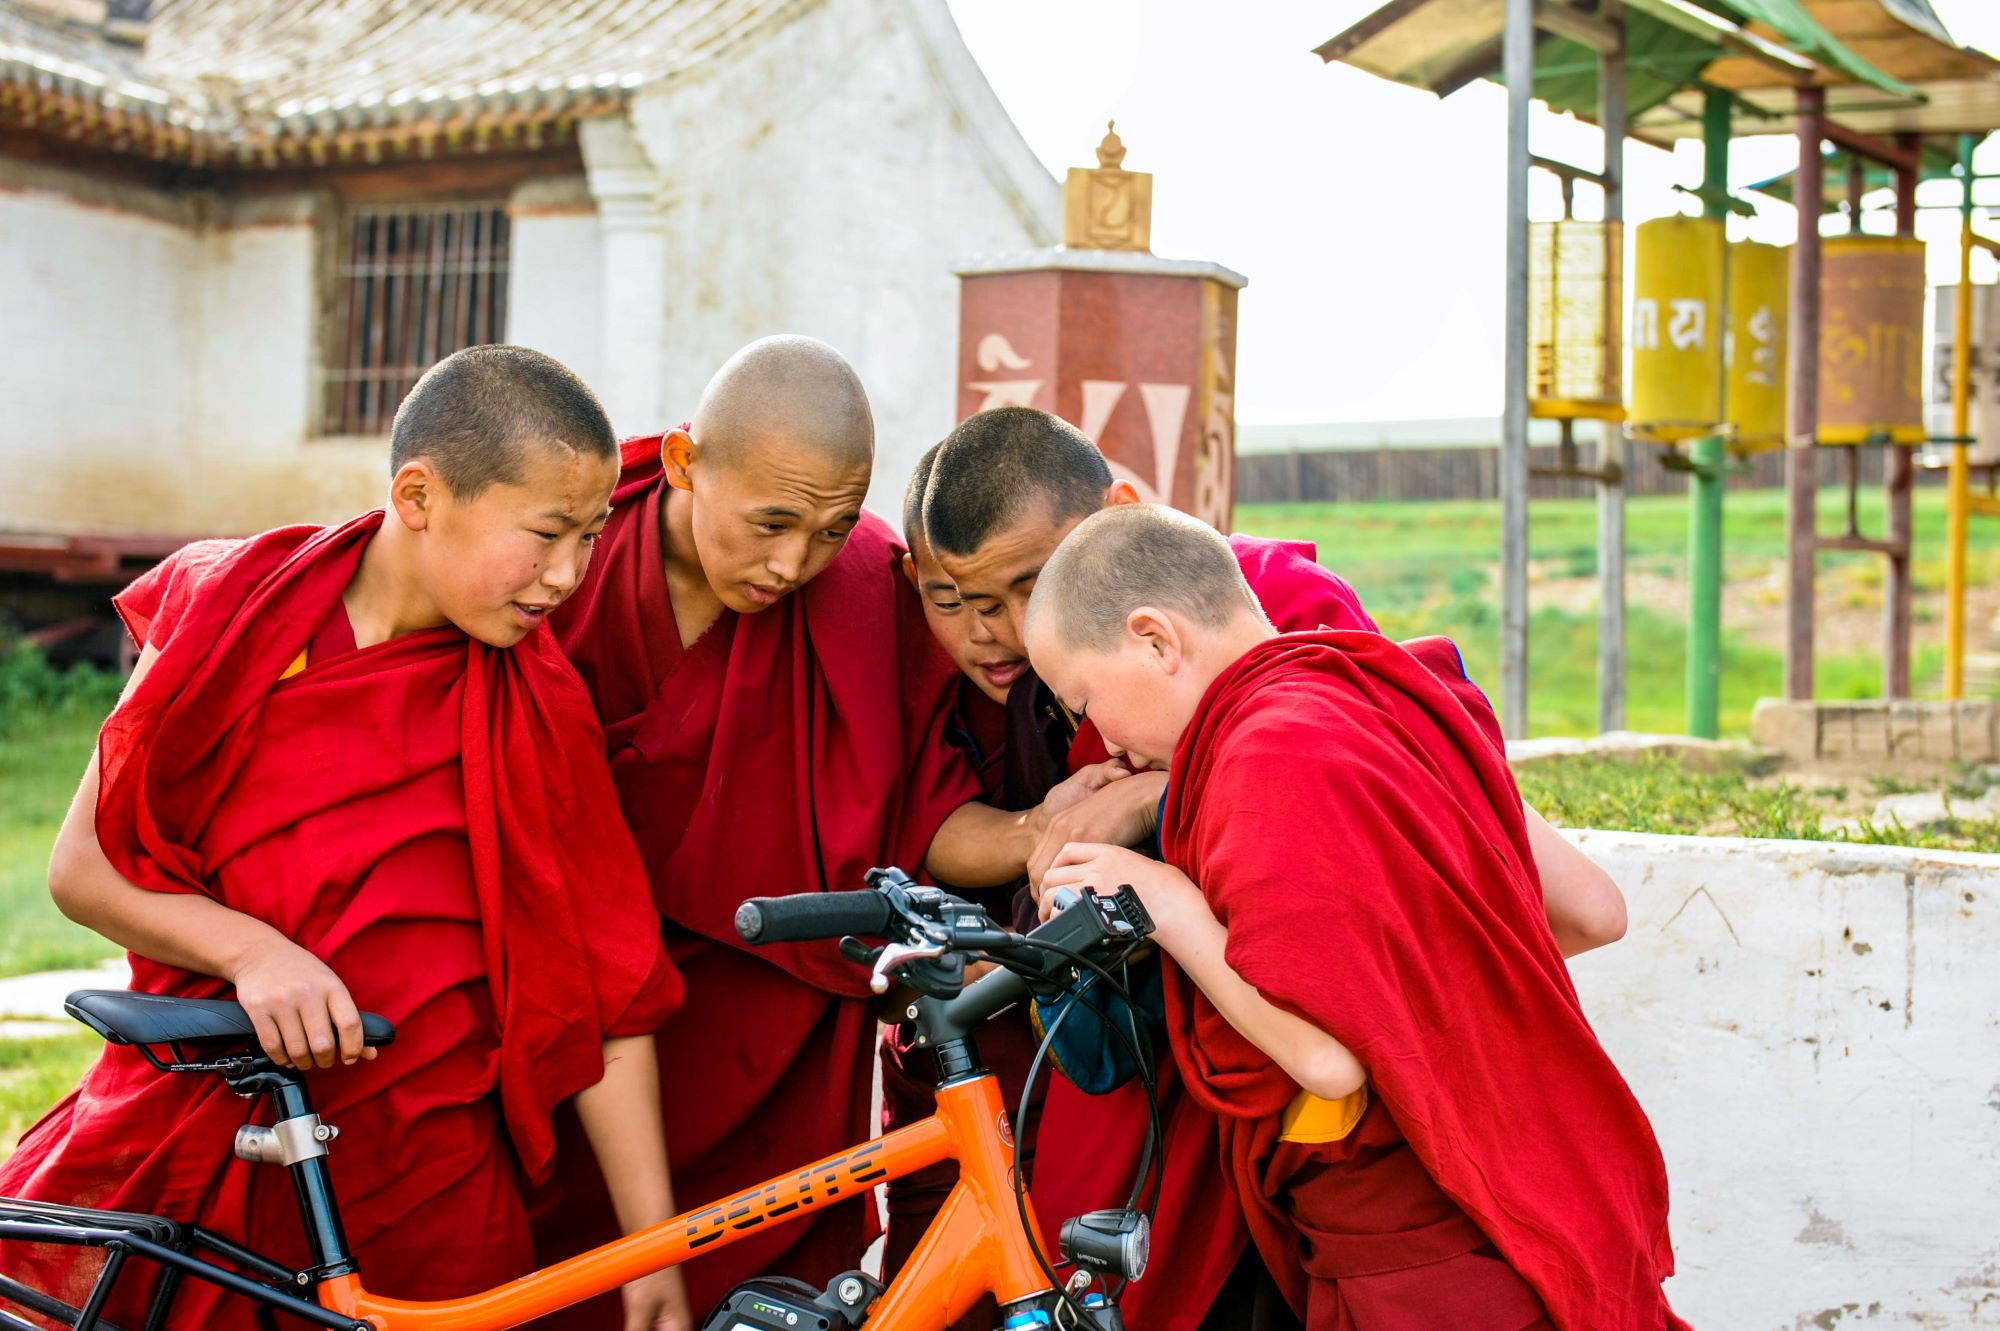 50 ways to cycle the world: monks bicycle